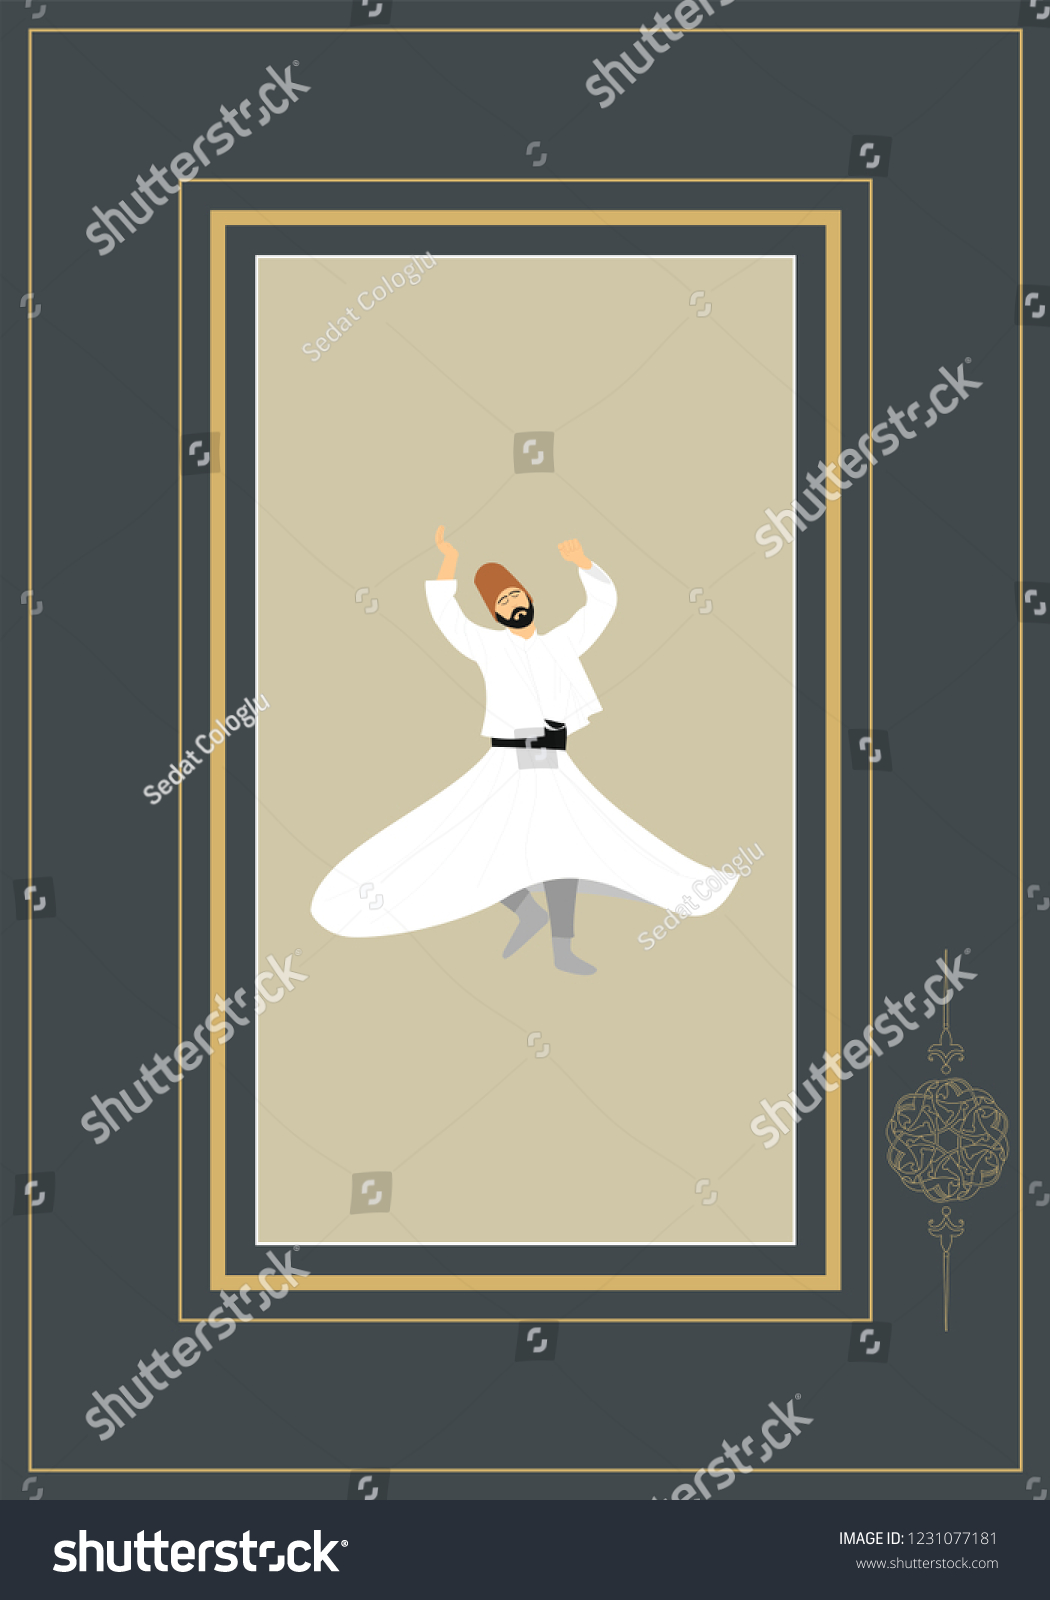 stock-vector-vector-set-of-ornate-vertical-table-in-dervish-style-eps-format-vector-drawing-you-can-use-it-1231077181